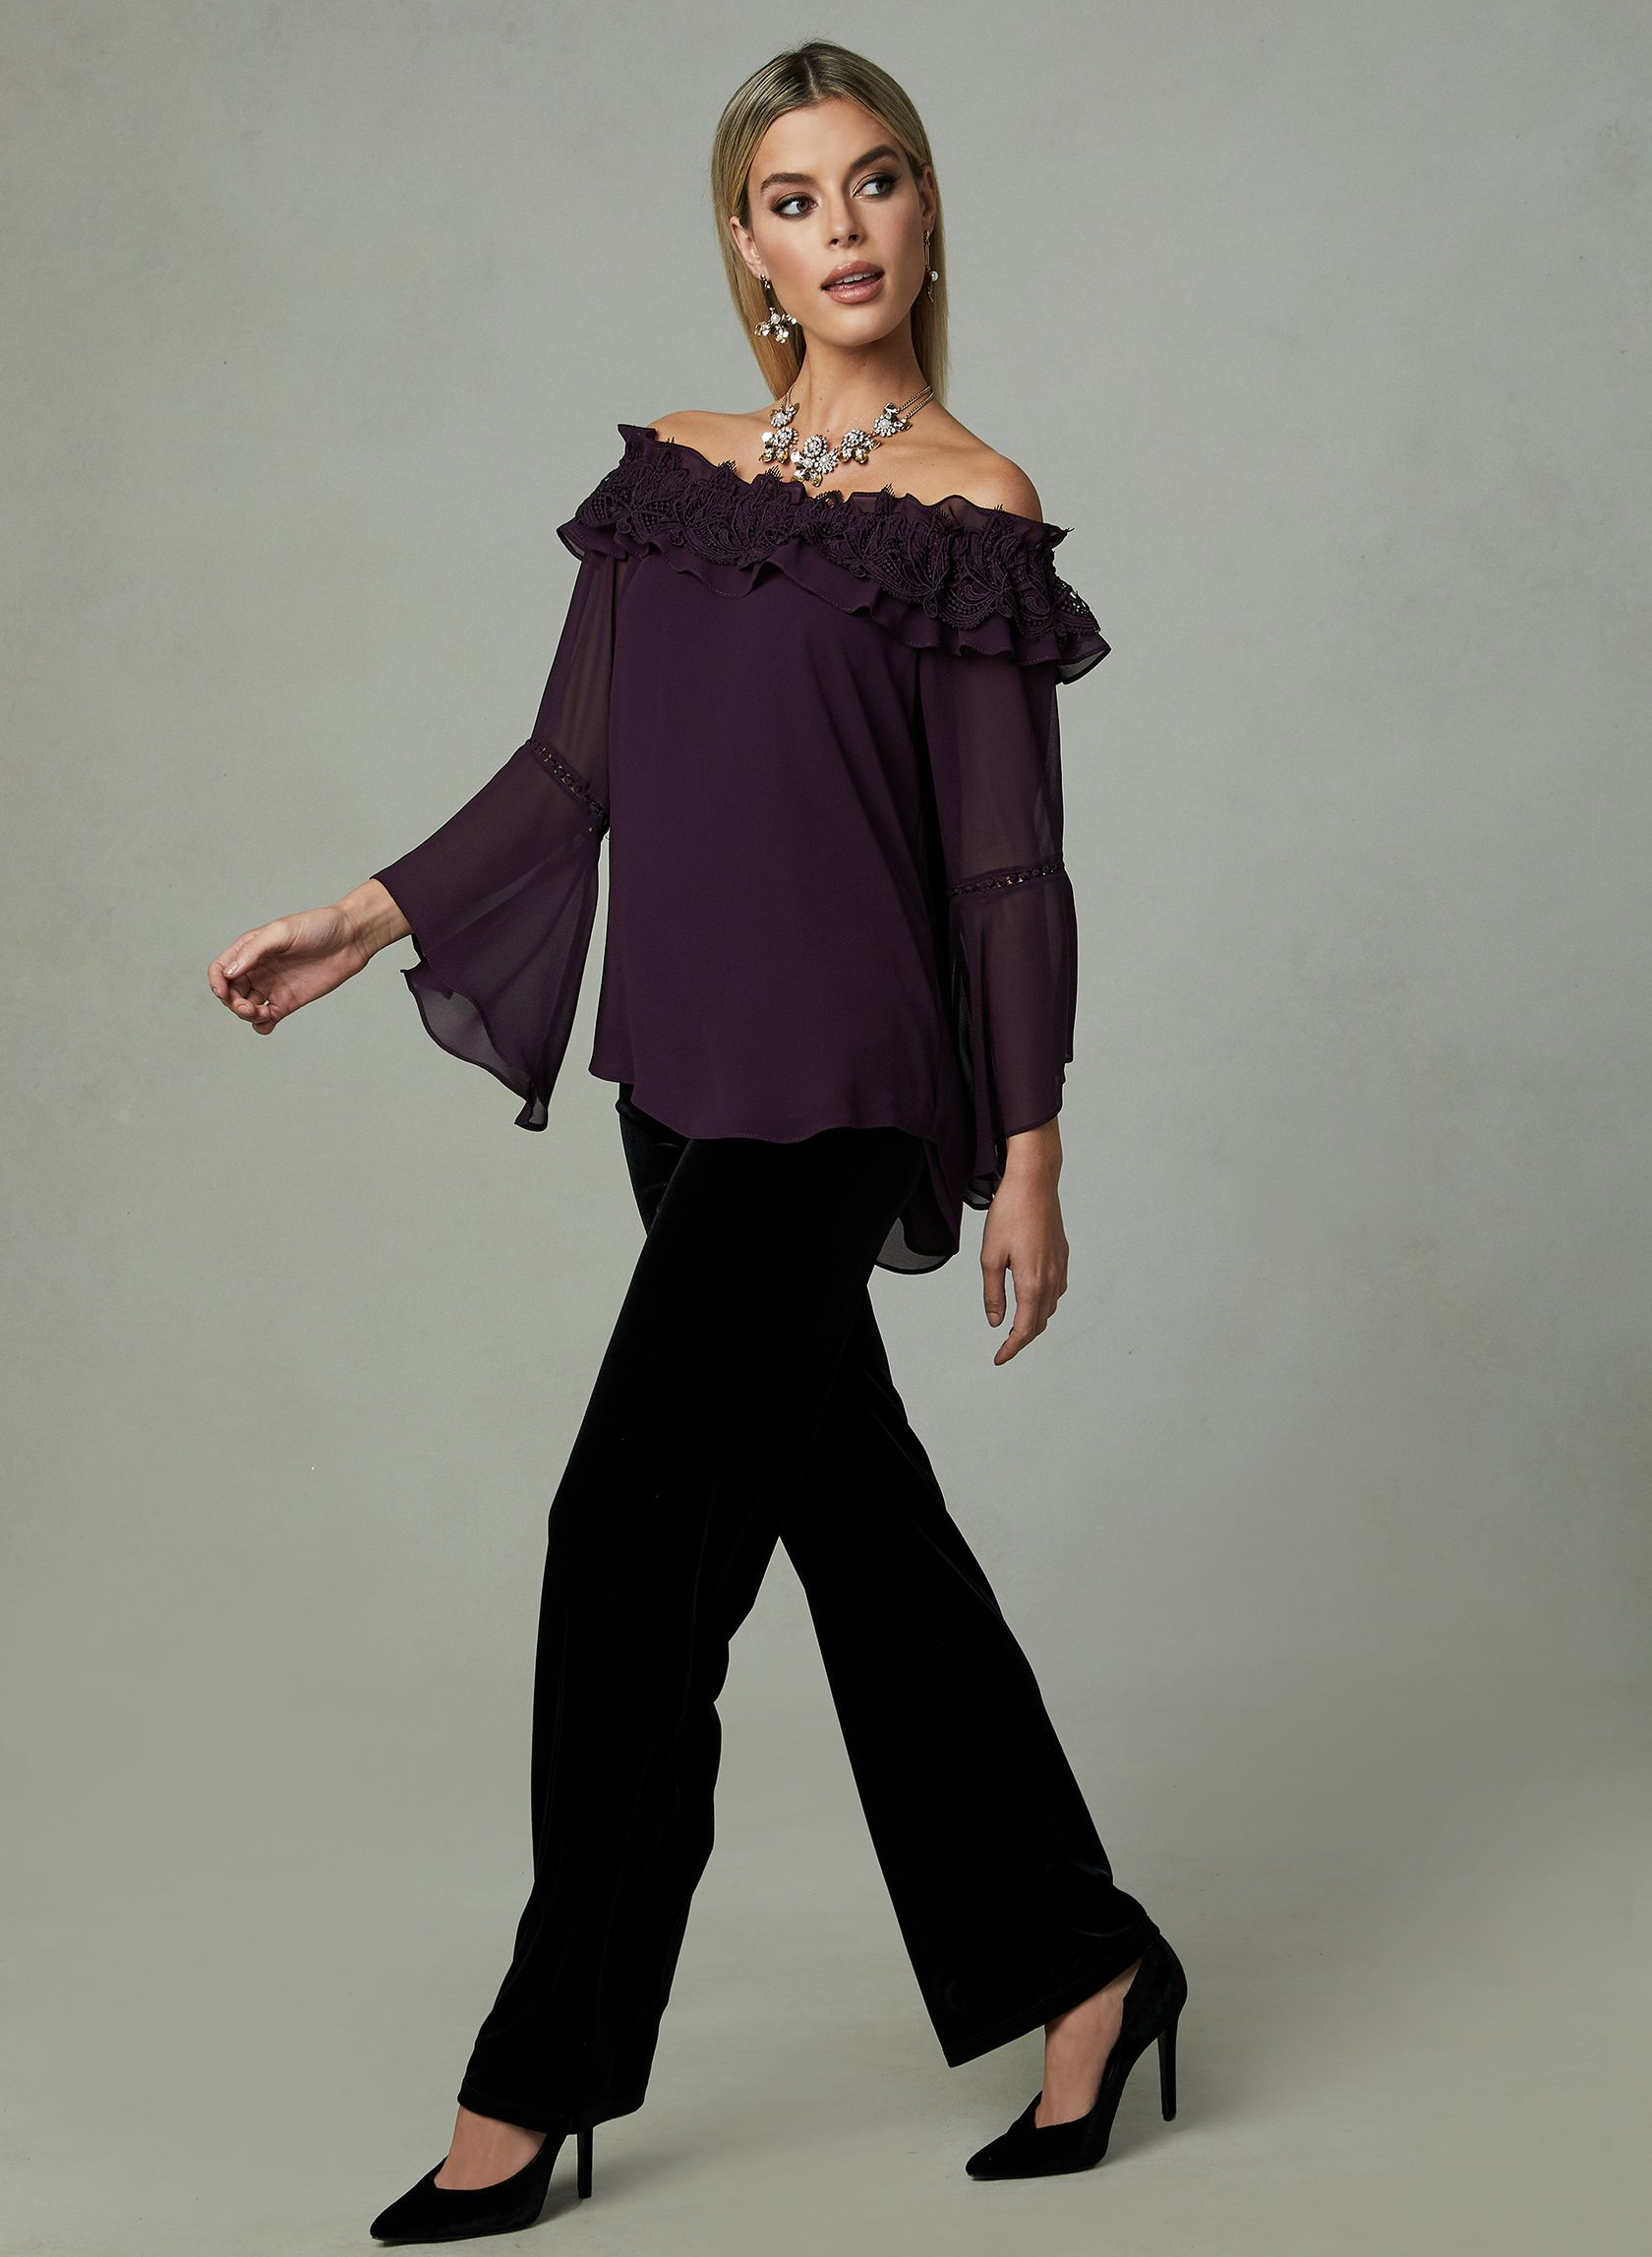 dc9ee383c96c Shop fashion essentials at Melanie Lyne & save on blouses, pants, dresses,  skirts